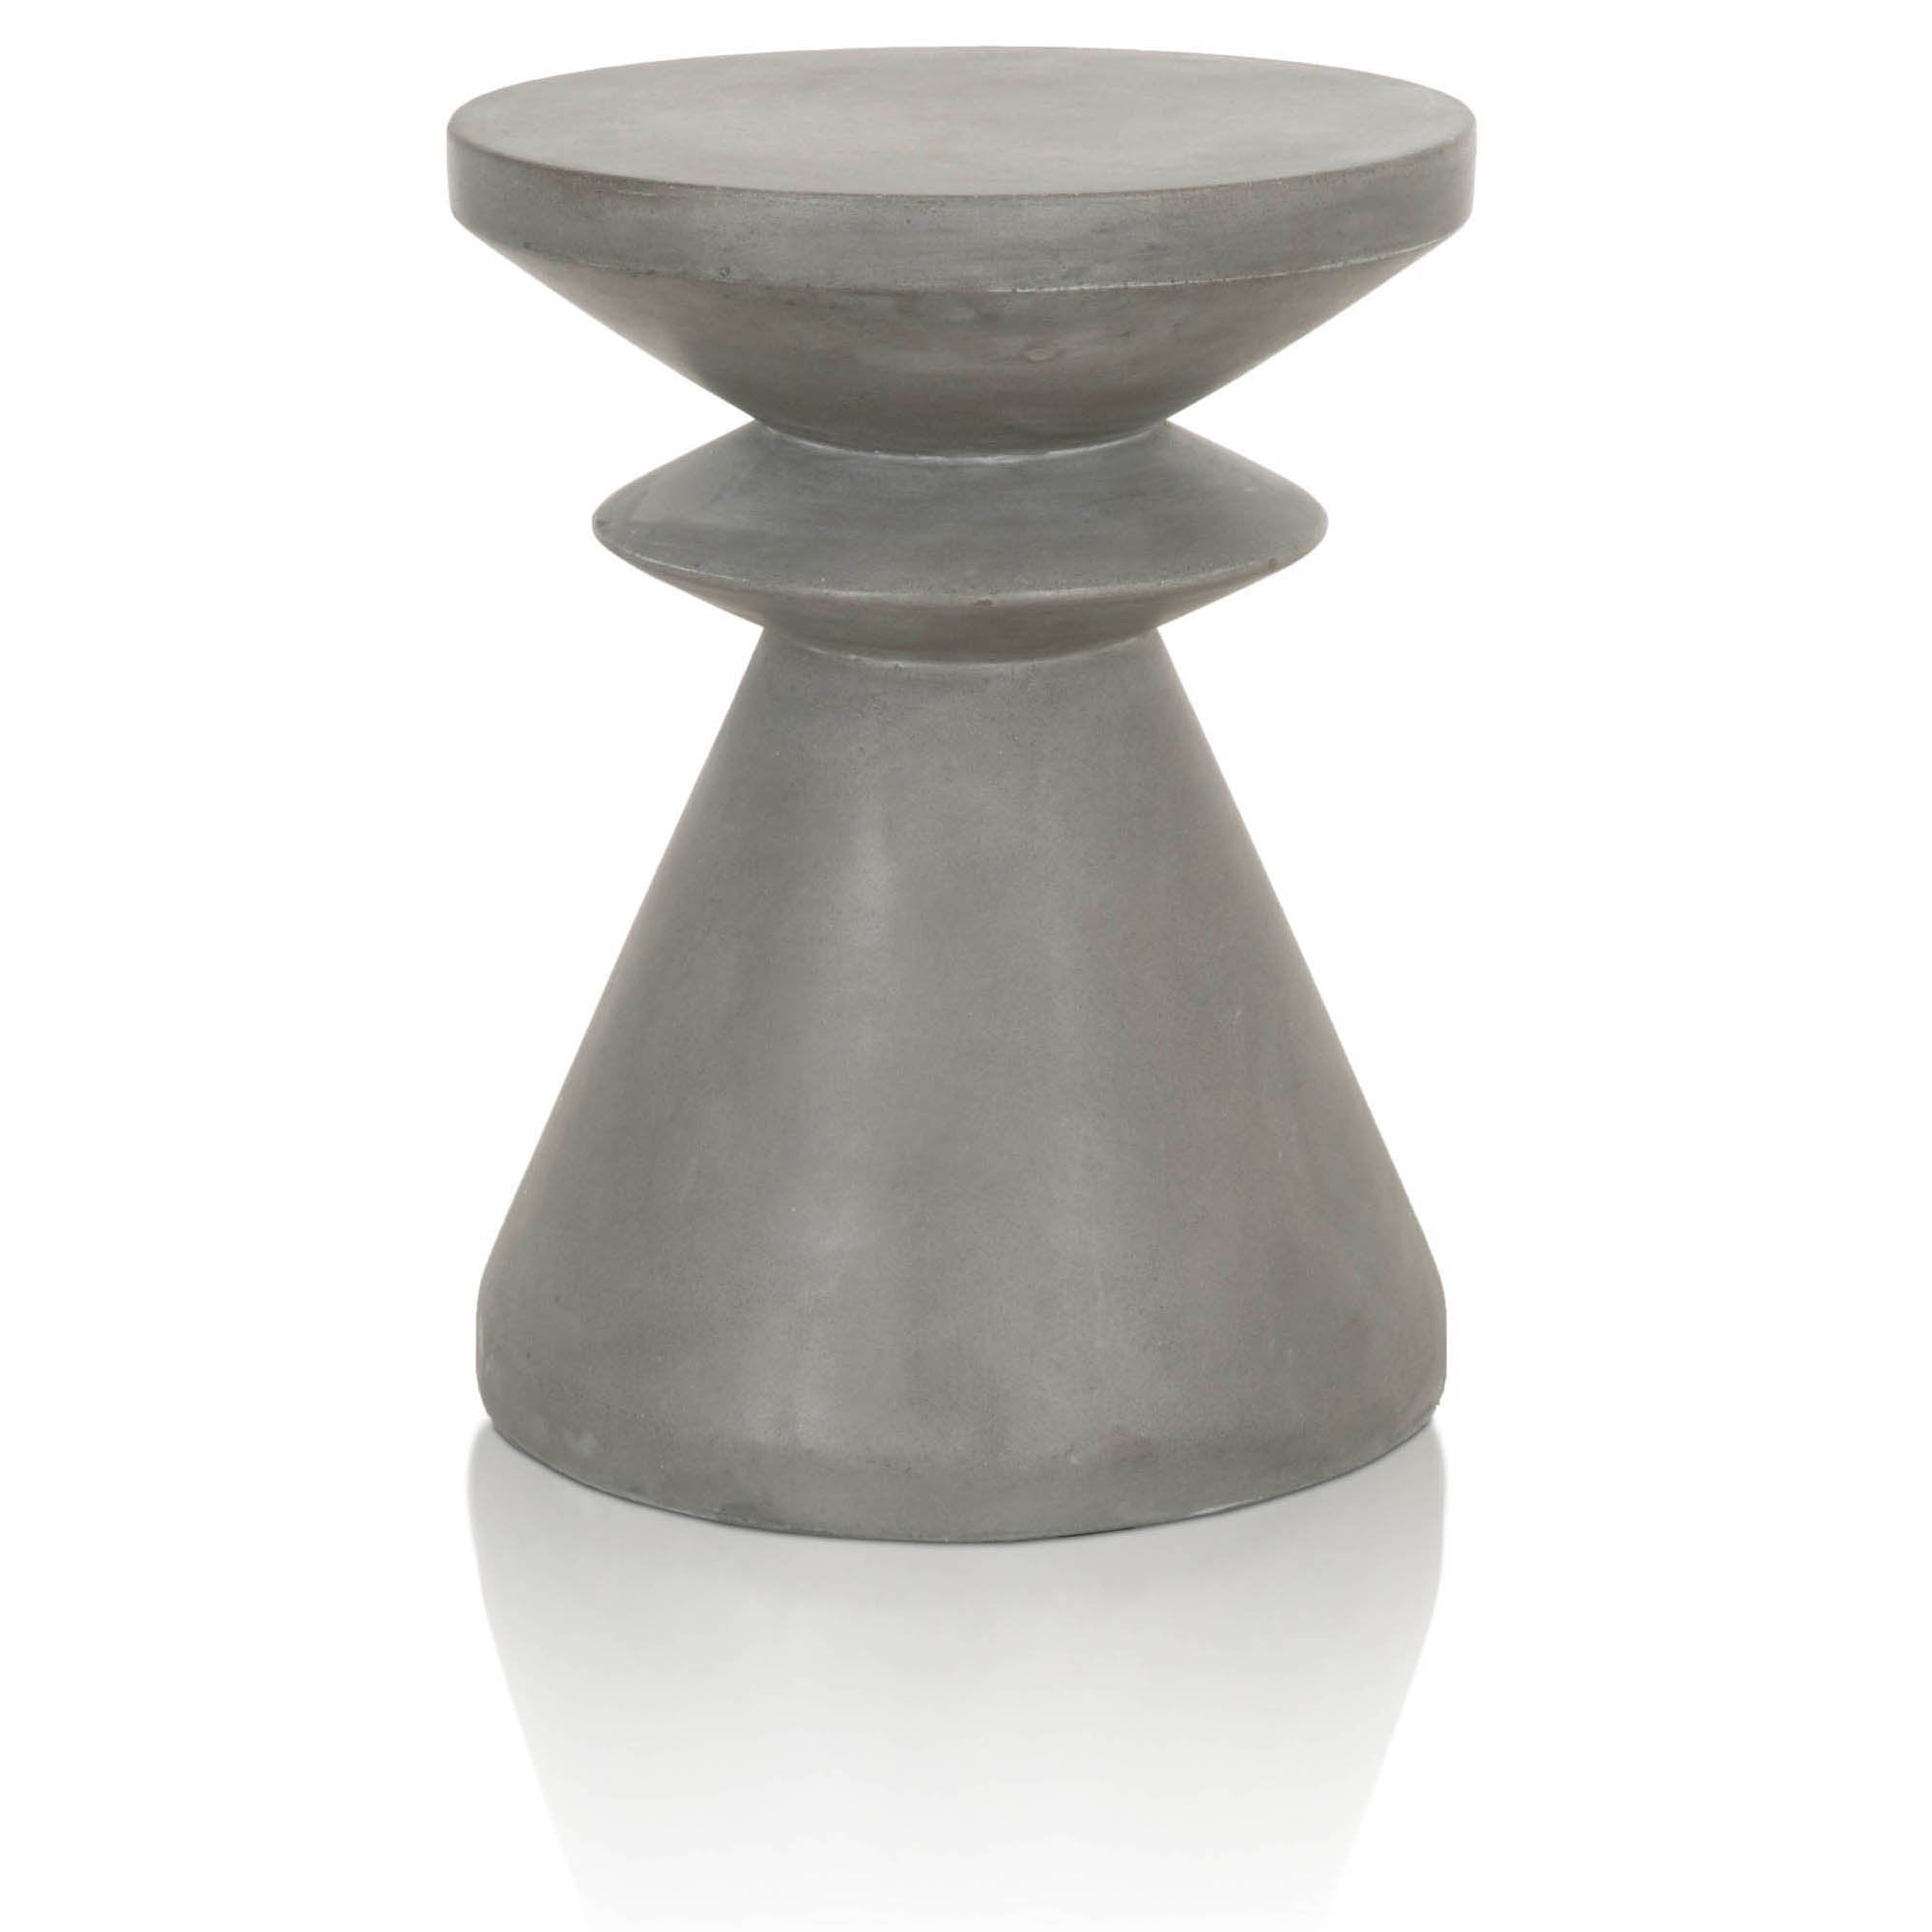 Pawn Accent Table in Slate Grey Concrete